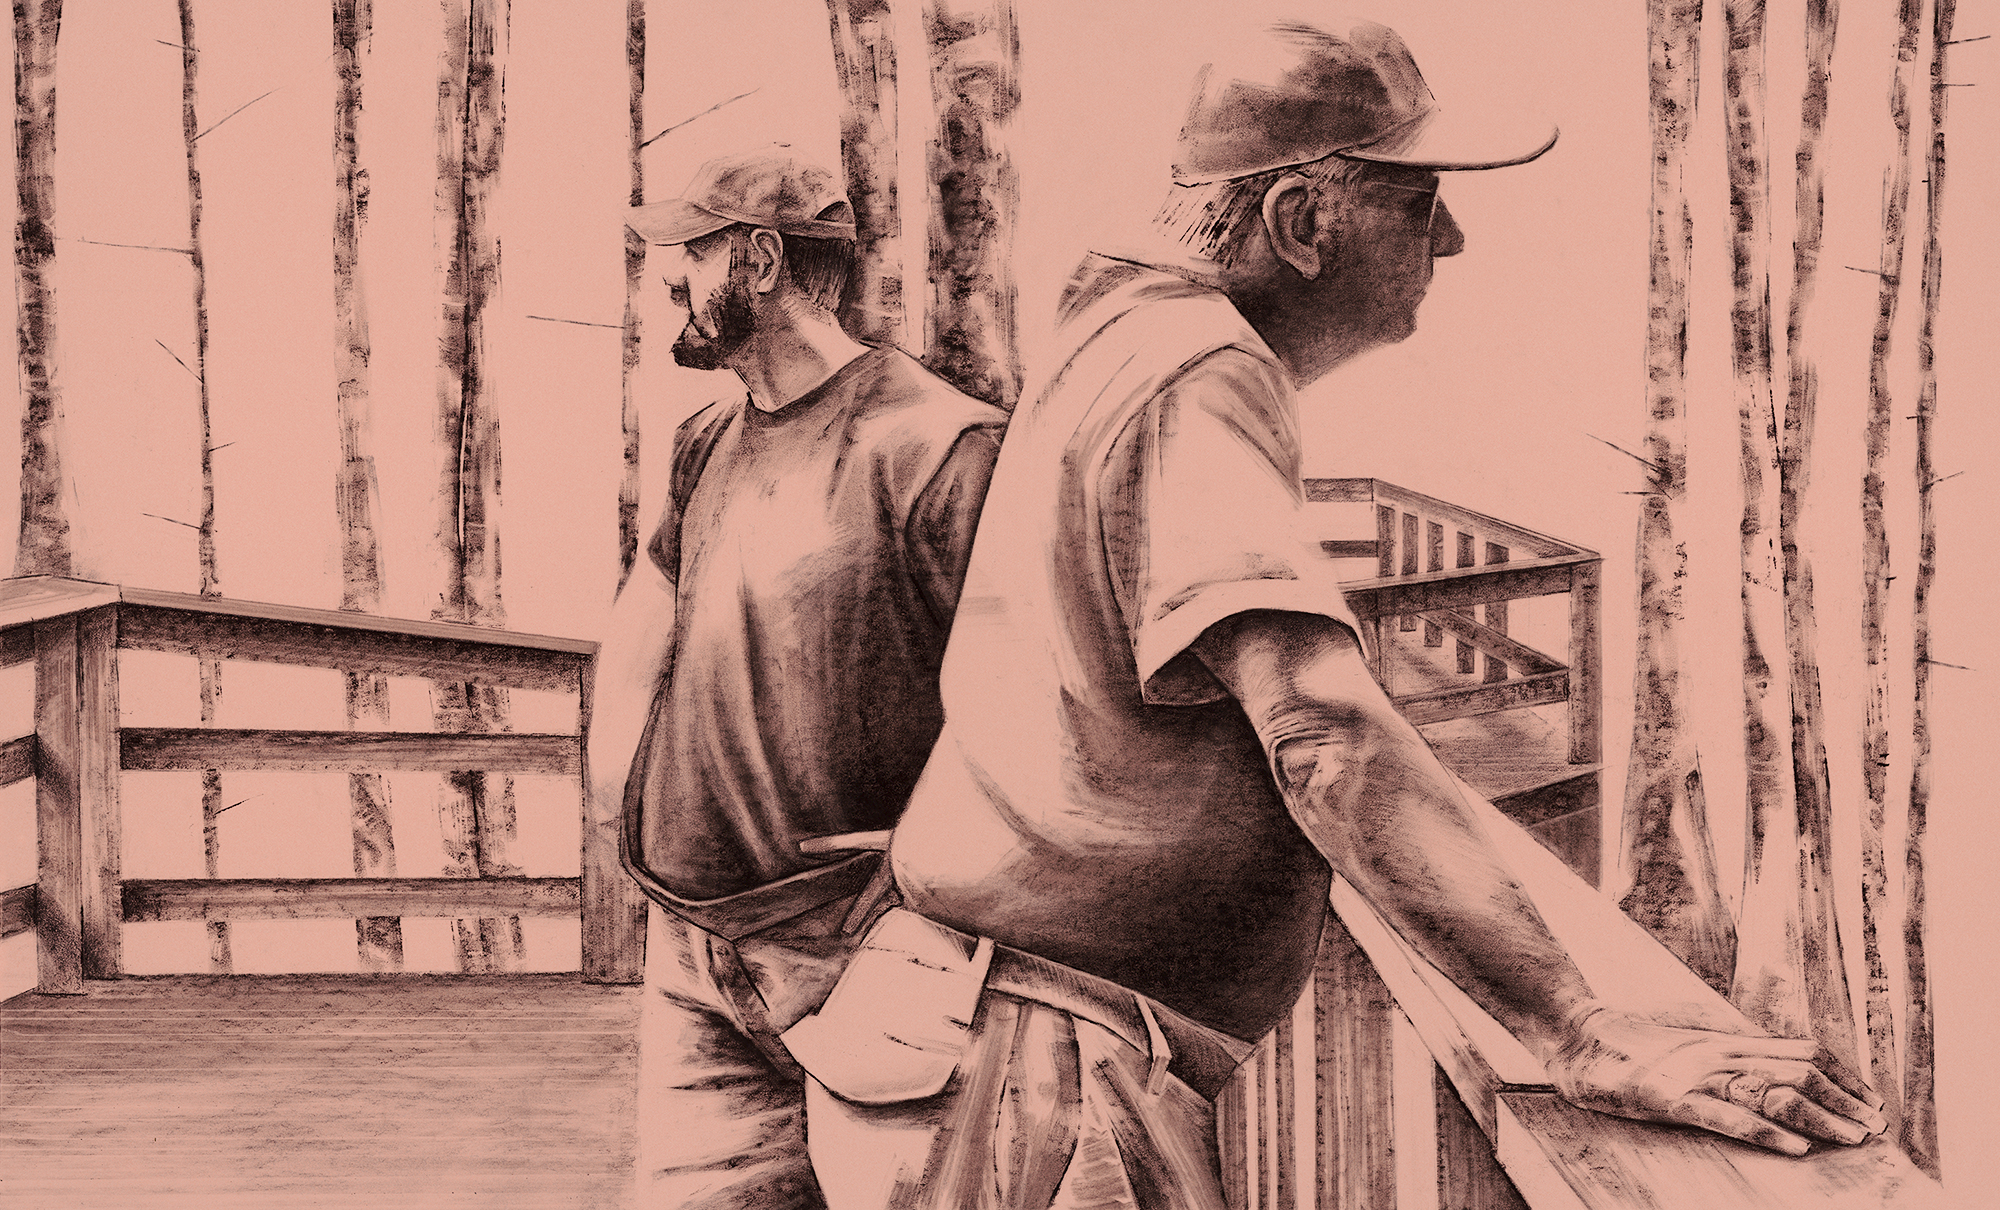 """Daybreak , 40""""x25"""", Charcoal on Paper, 2017 Copyright Mack Gingles, 2019"""